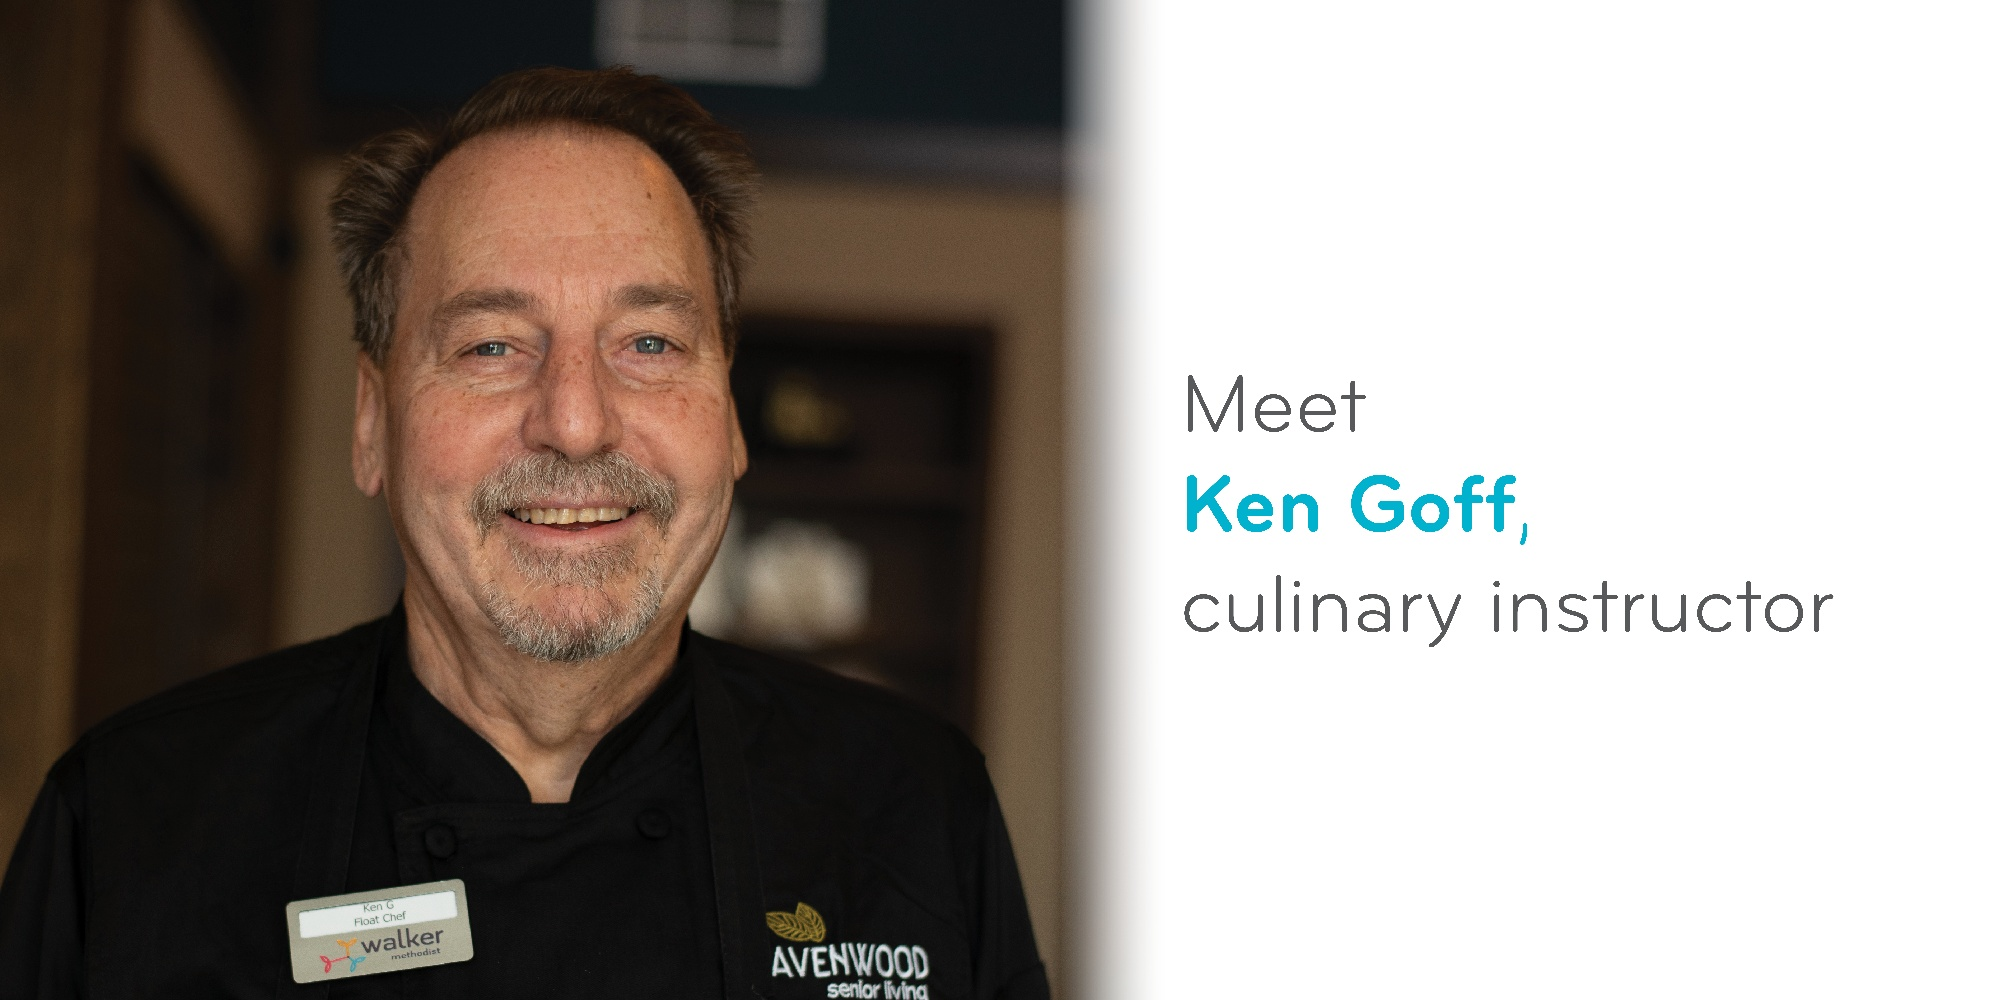 Meet Ken Goff, culinary instructor